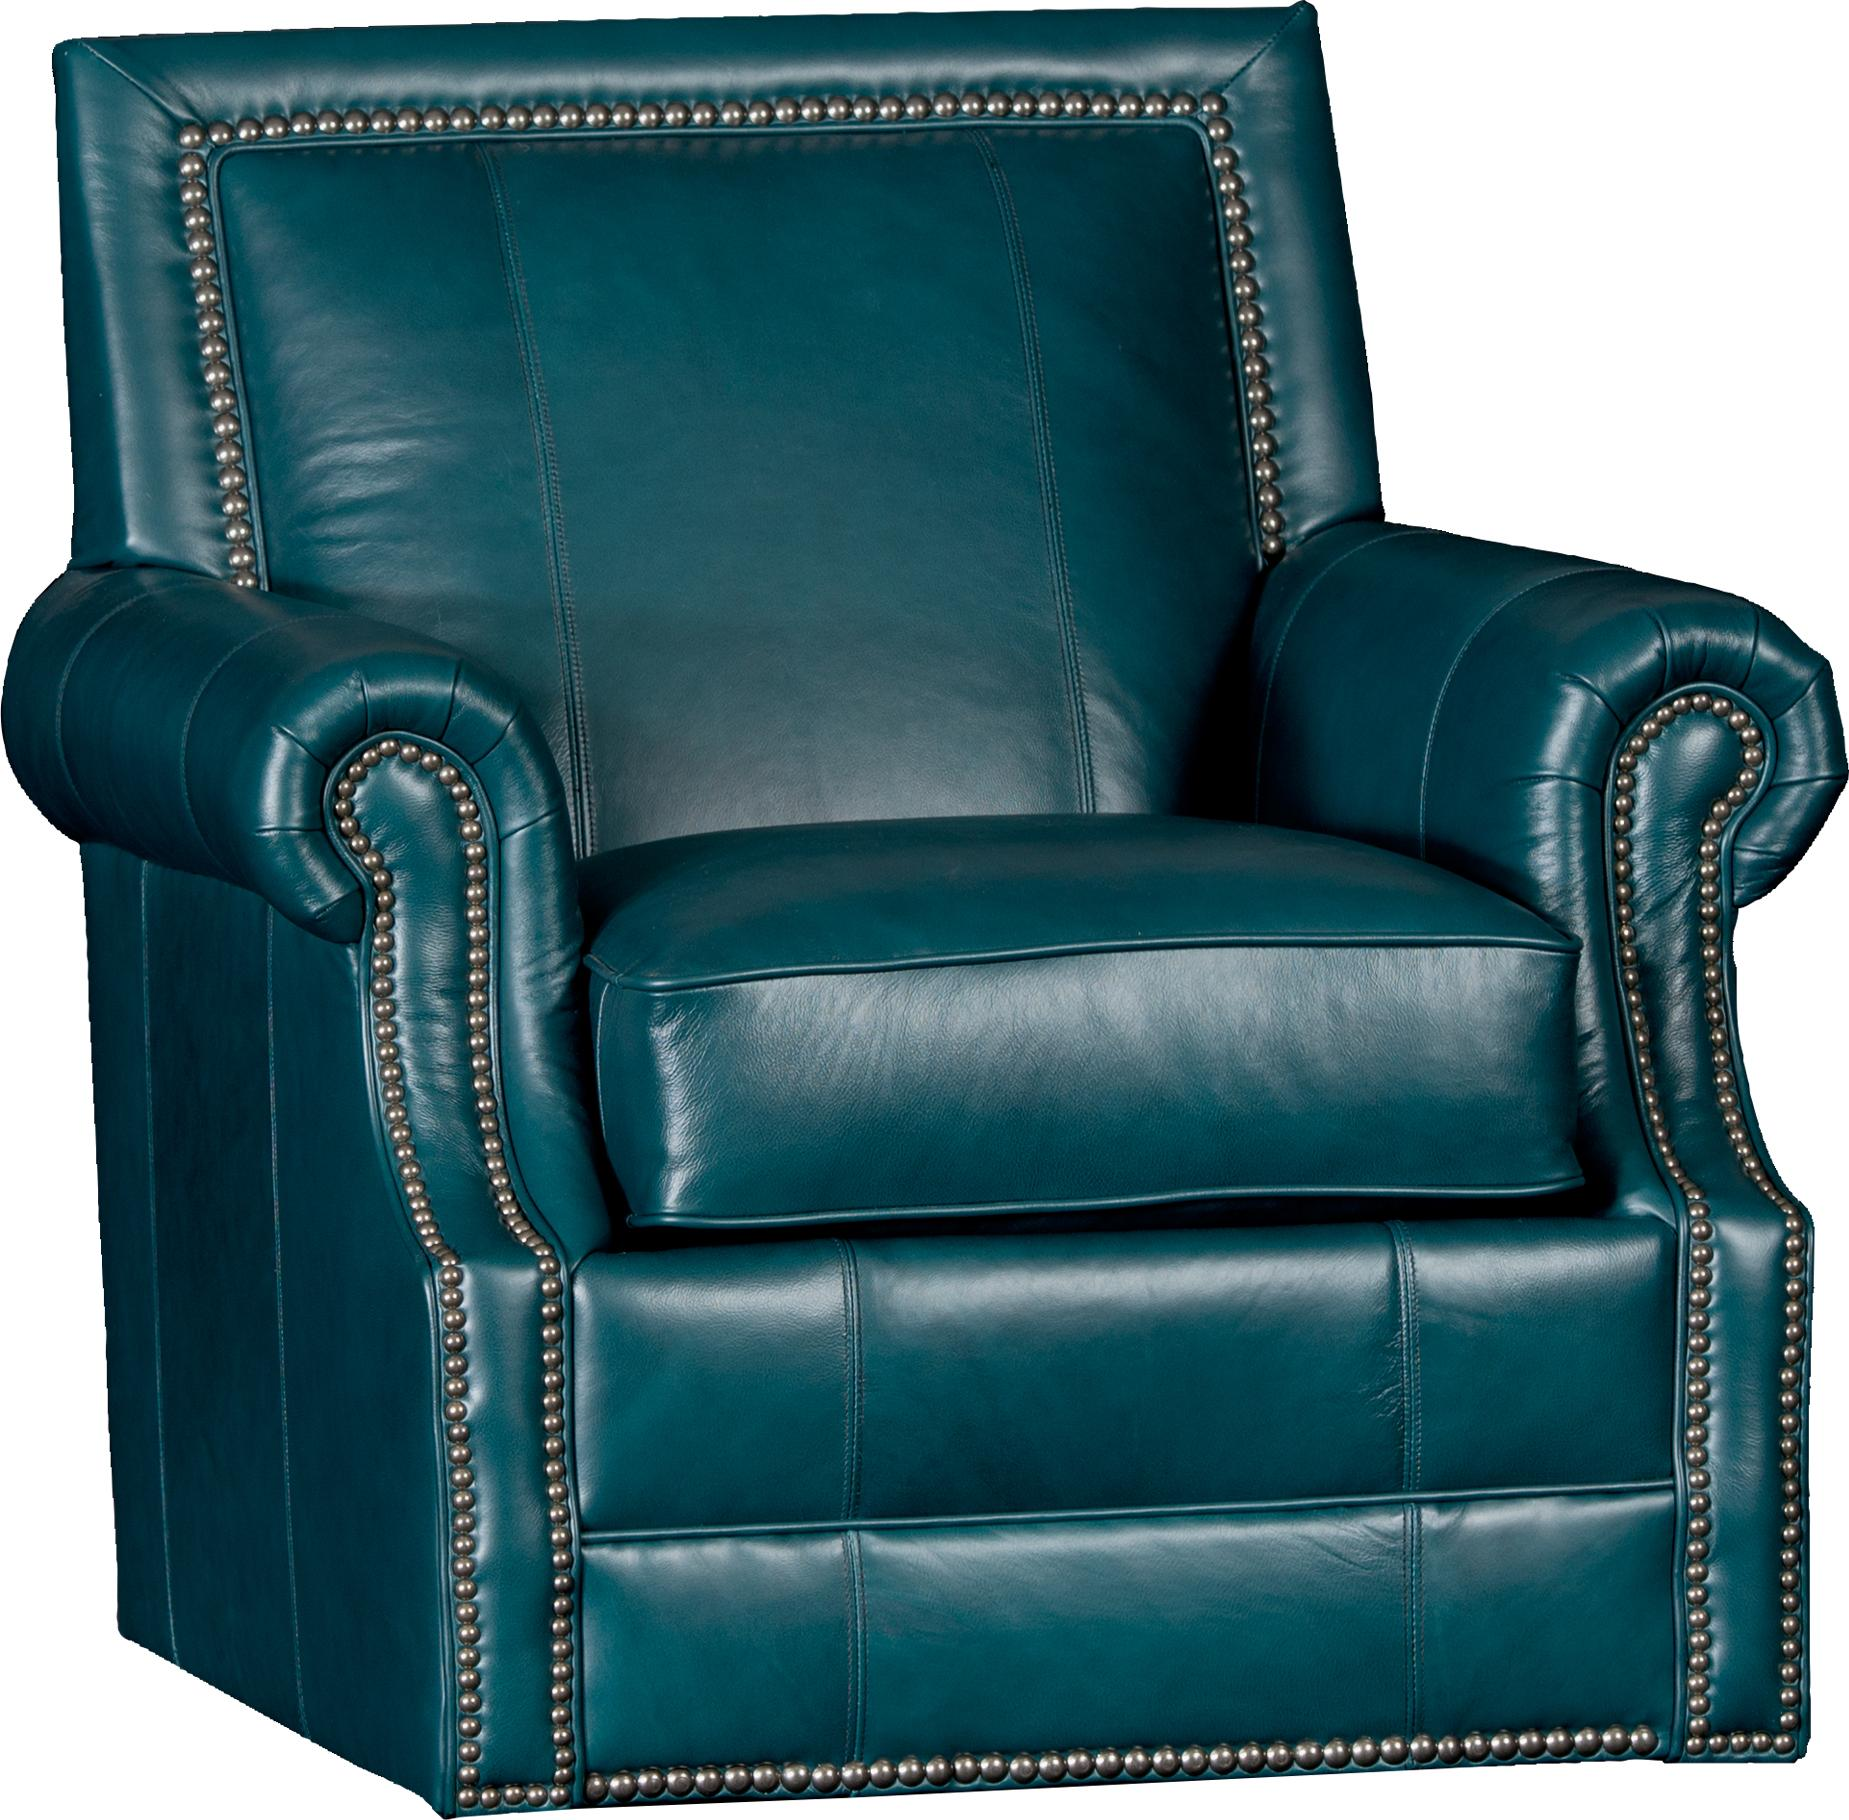 4110 Swivel Chair by Mayo at Wilson's Furniture